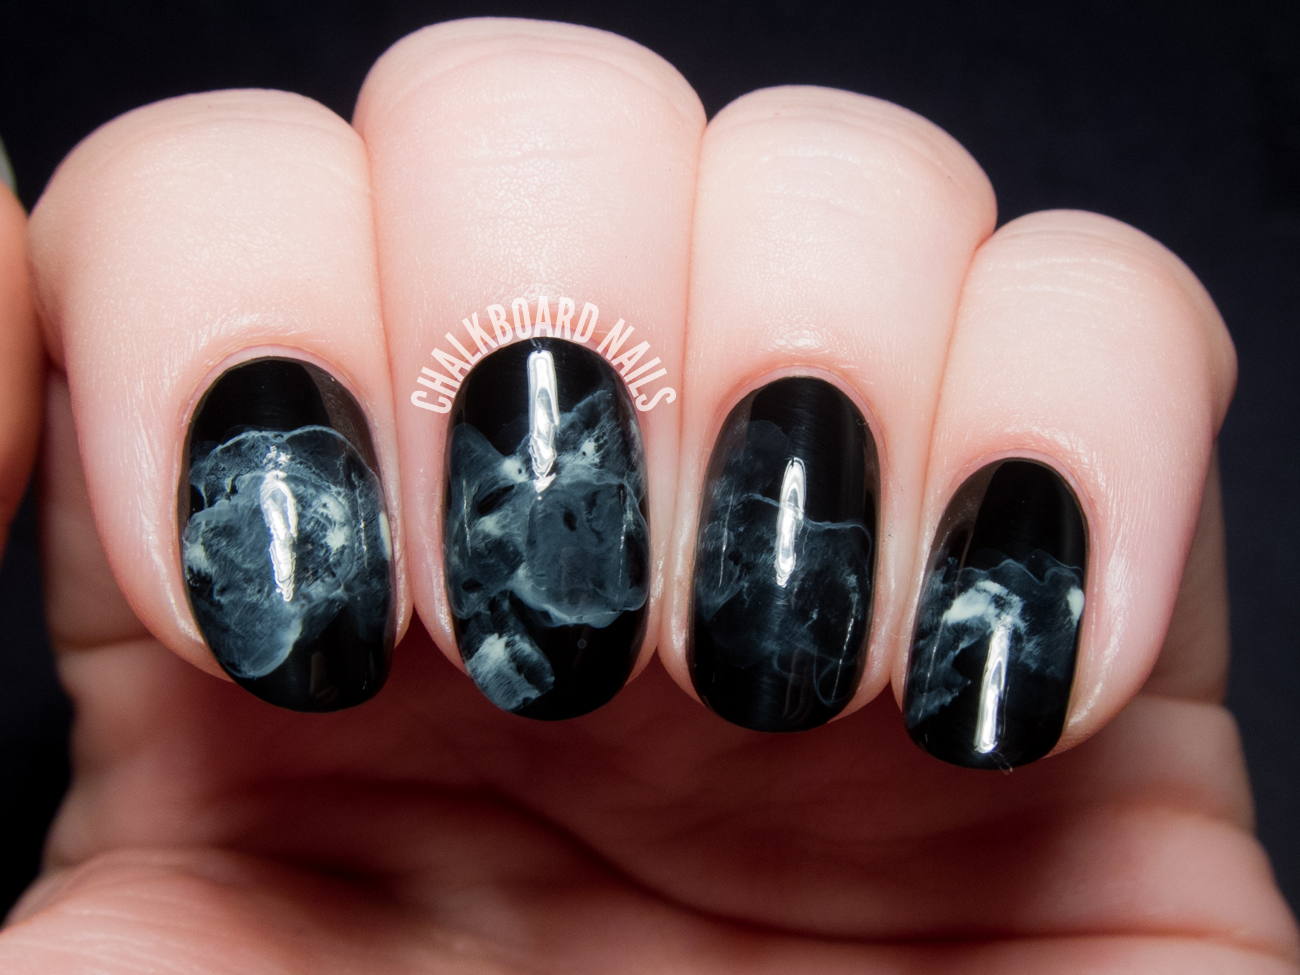 Midnight Smoke Nail Art Tutorial by @chalkboardnails